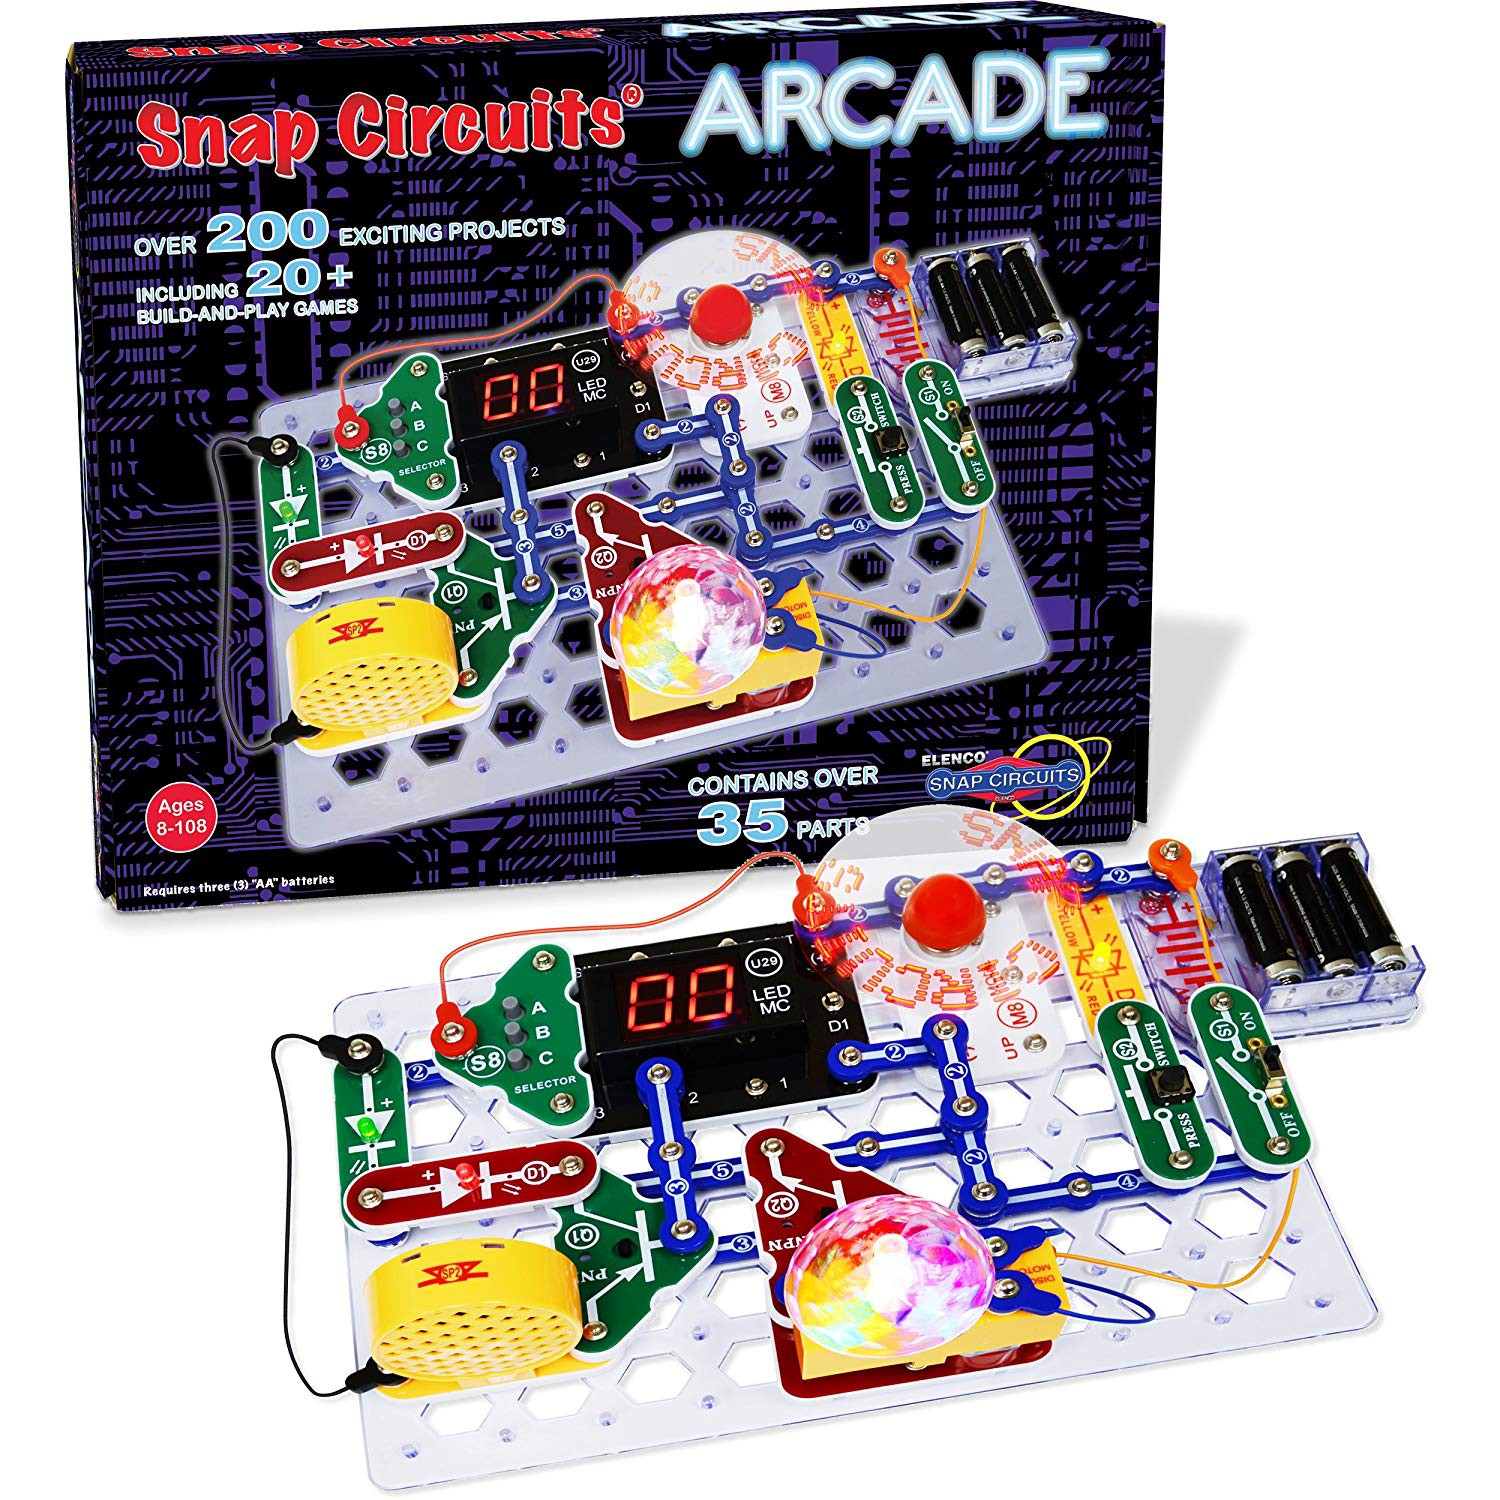 Nerdy And Geeky Gifts Guide Winter 2018 Edition B Drew Collier That Snap Together Easily You Also Get An Elenco Circuits Make Your Own Tabletop Arcade With The Kit Is Another Multi Award Winner This Introduces To Electronics In